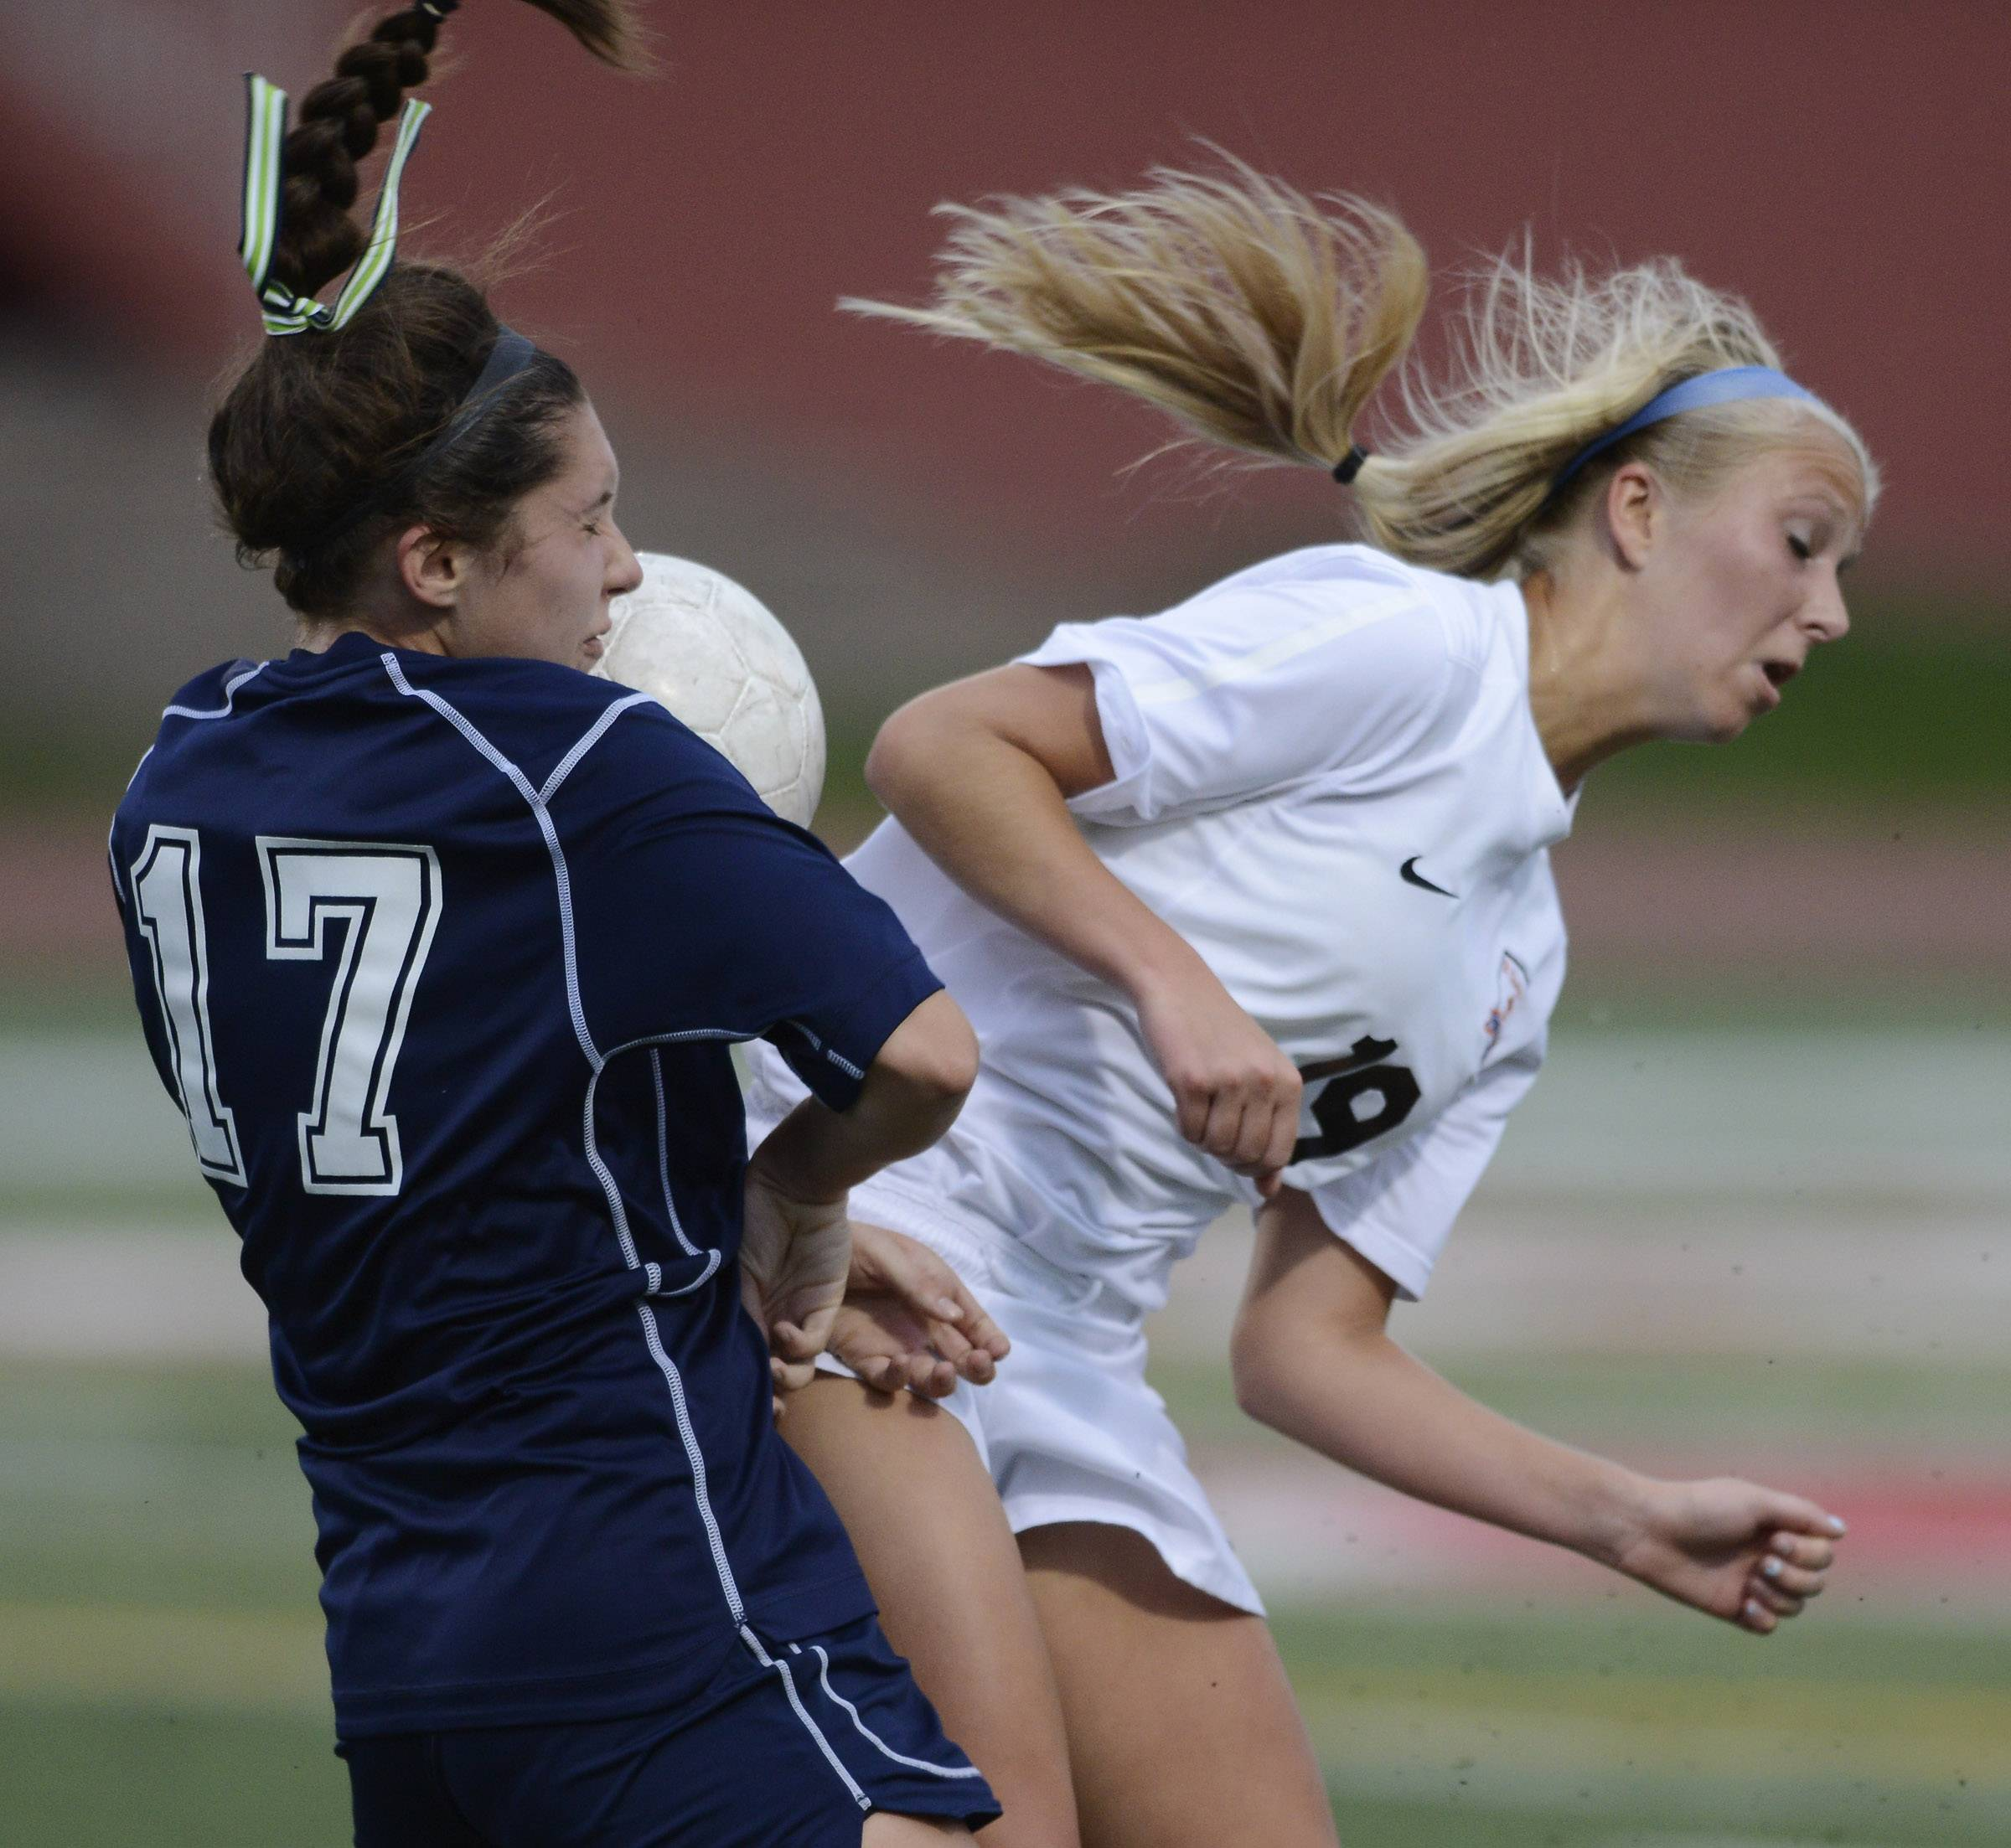 Caroline Smith, left, of New Trier and Sophie Jendrzeczyk of St. Charles East make contact as the pursue the ball during the girls soccer Class 3A state final at North Central College in Naperville Saturday.